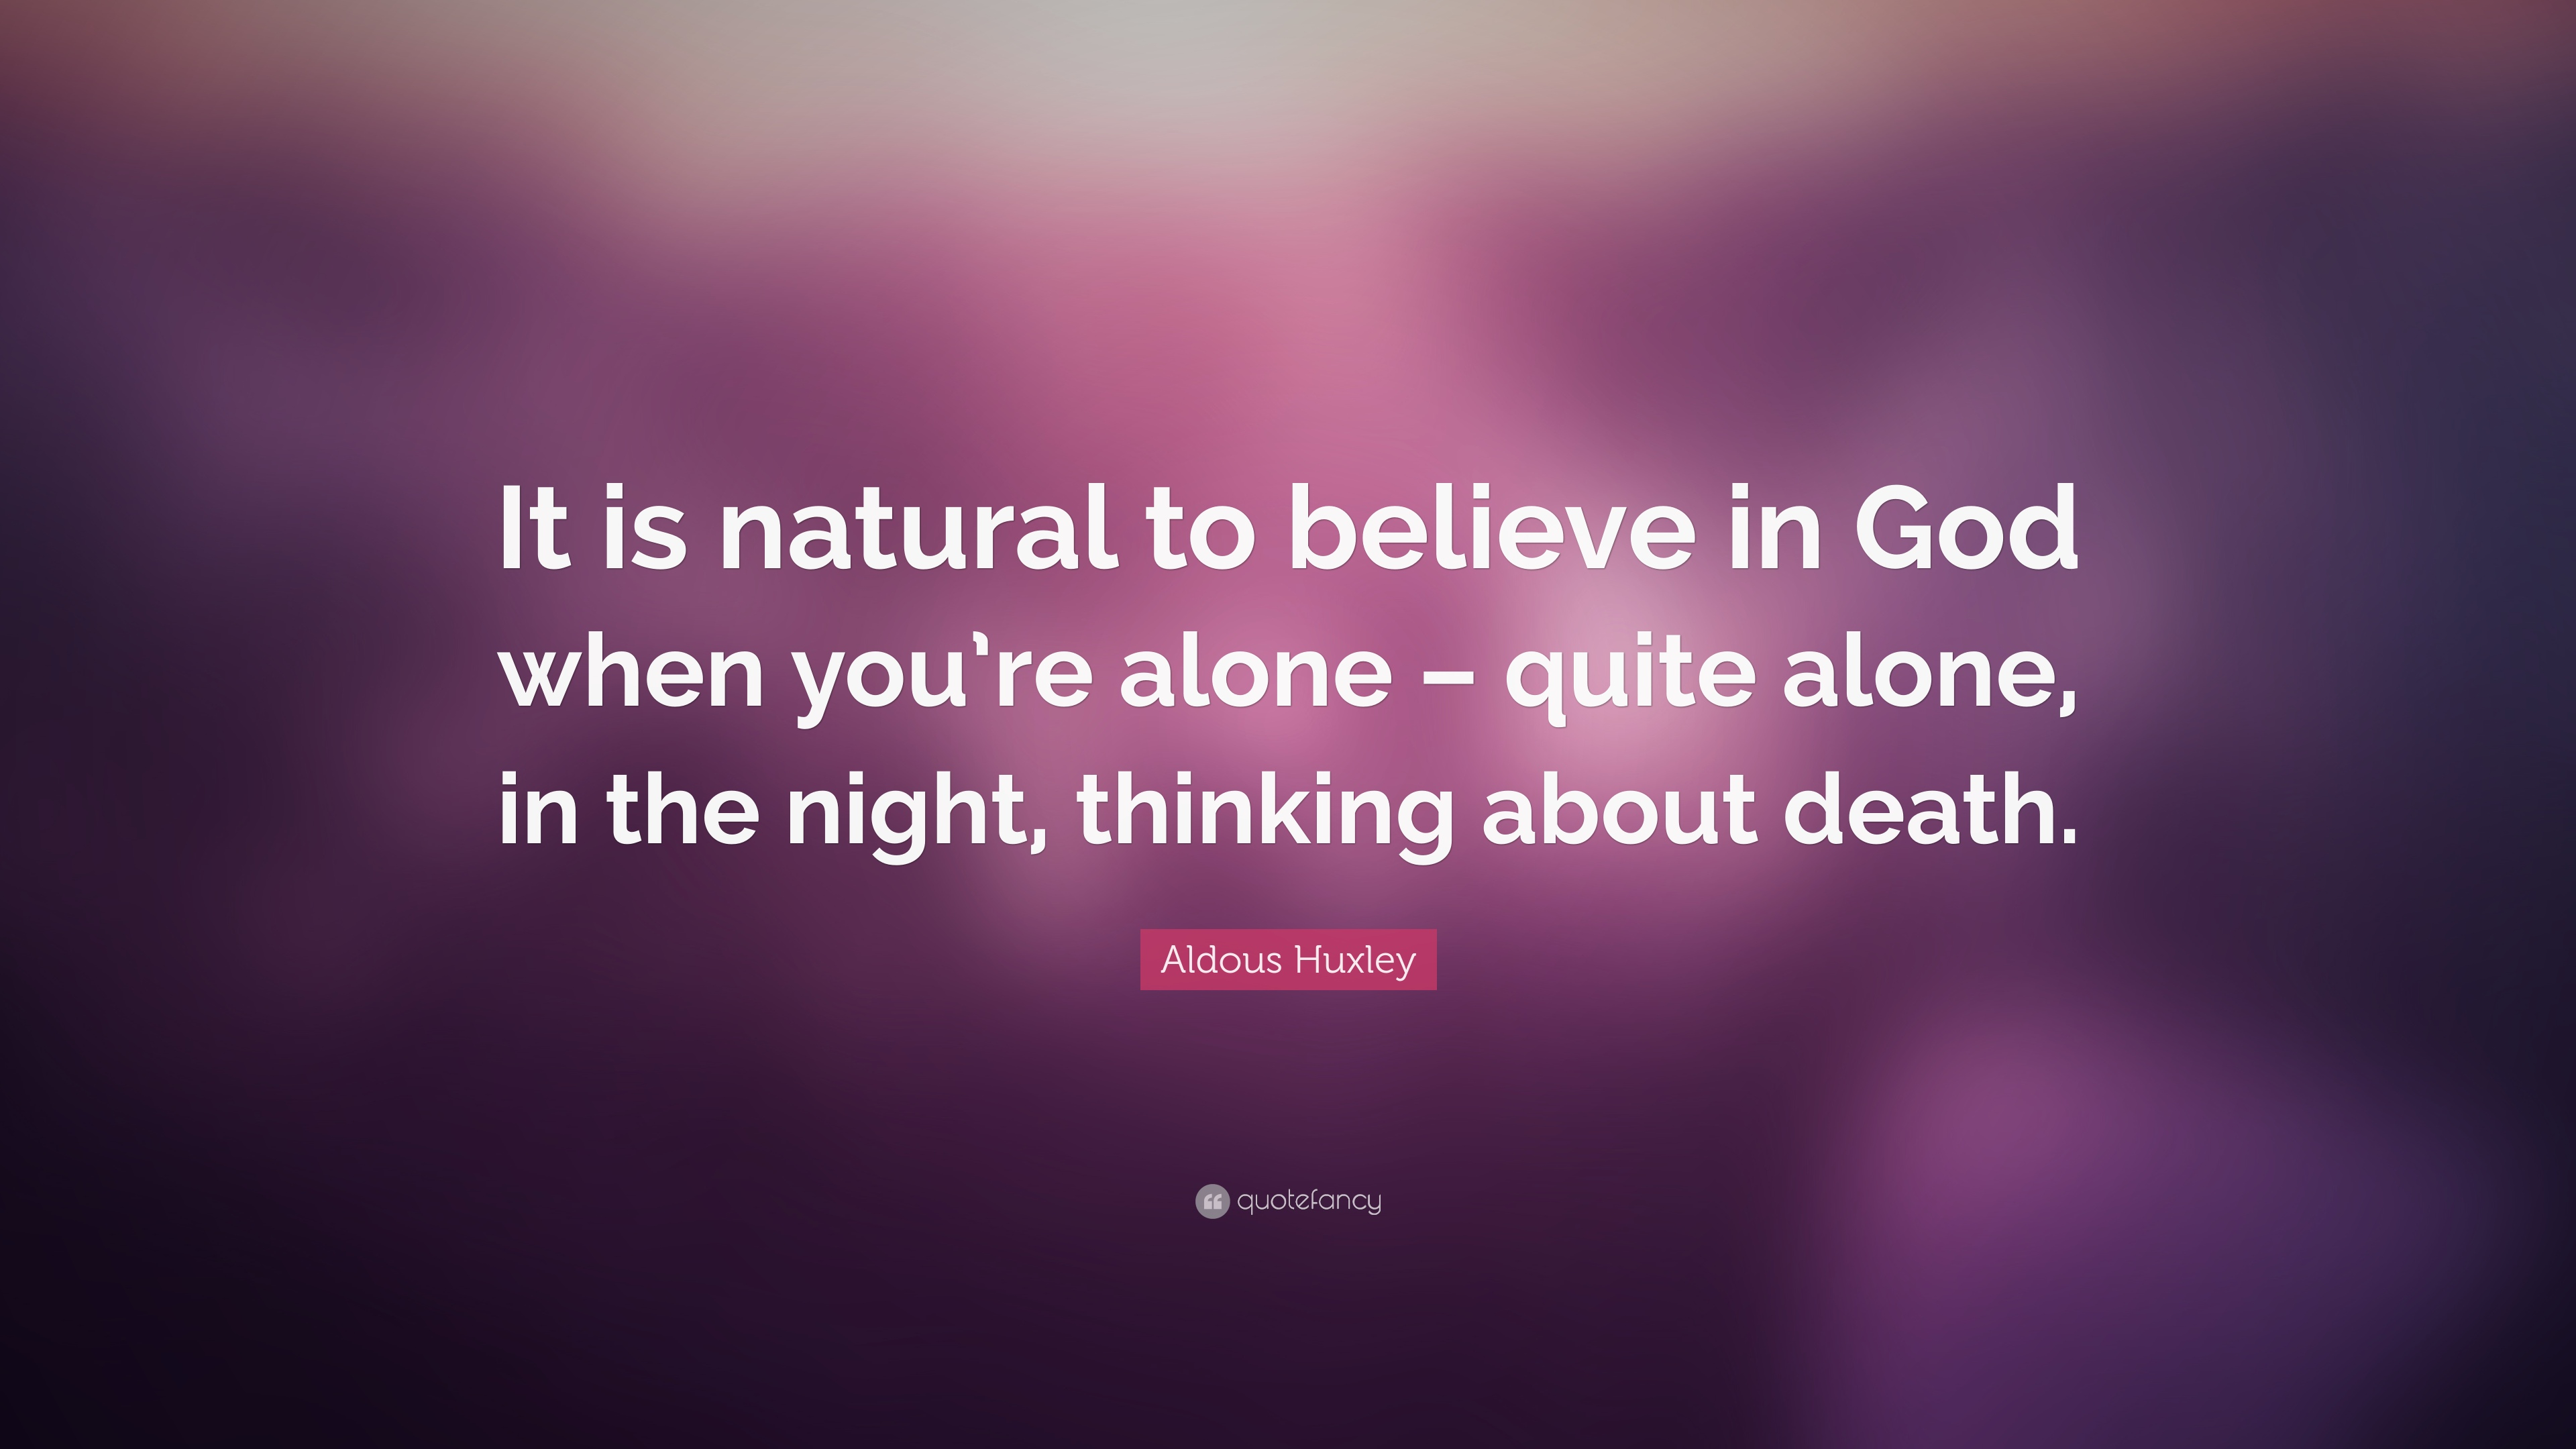 Image of: Late Night Aldous Huxley Quote it Is Natural To Believe In God When Youre Quotefancy Aldous Huxley Quote it Is Natural To Believe In God When Youre